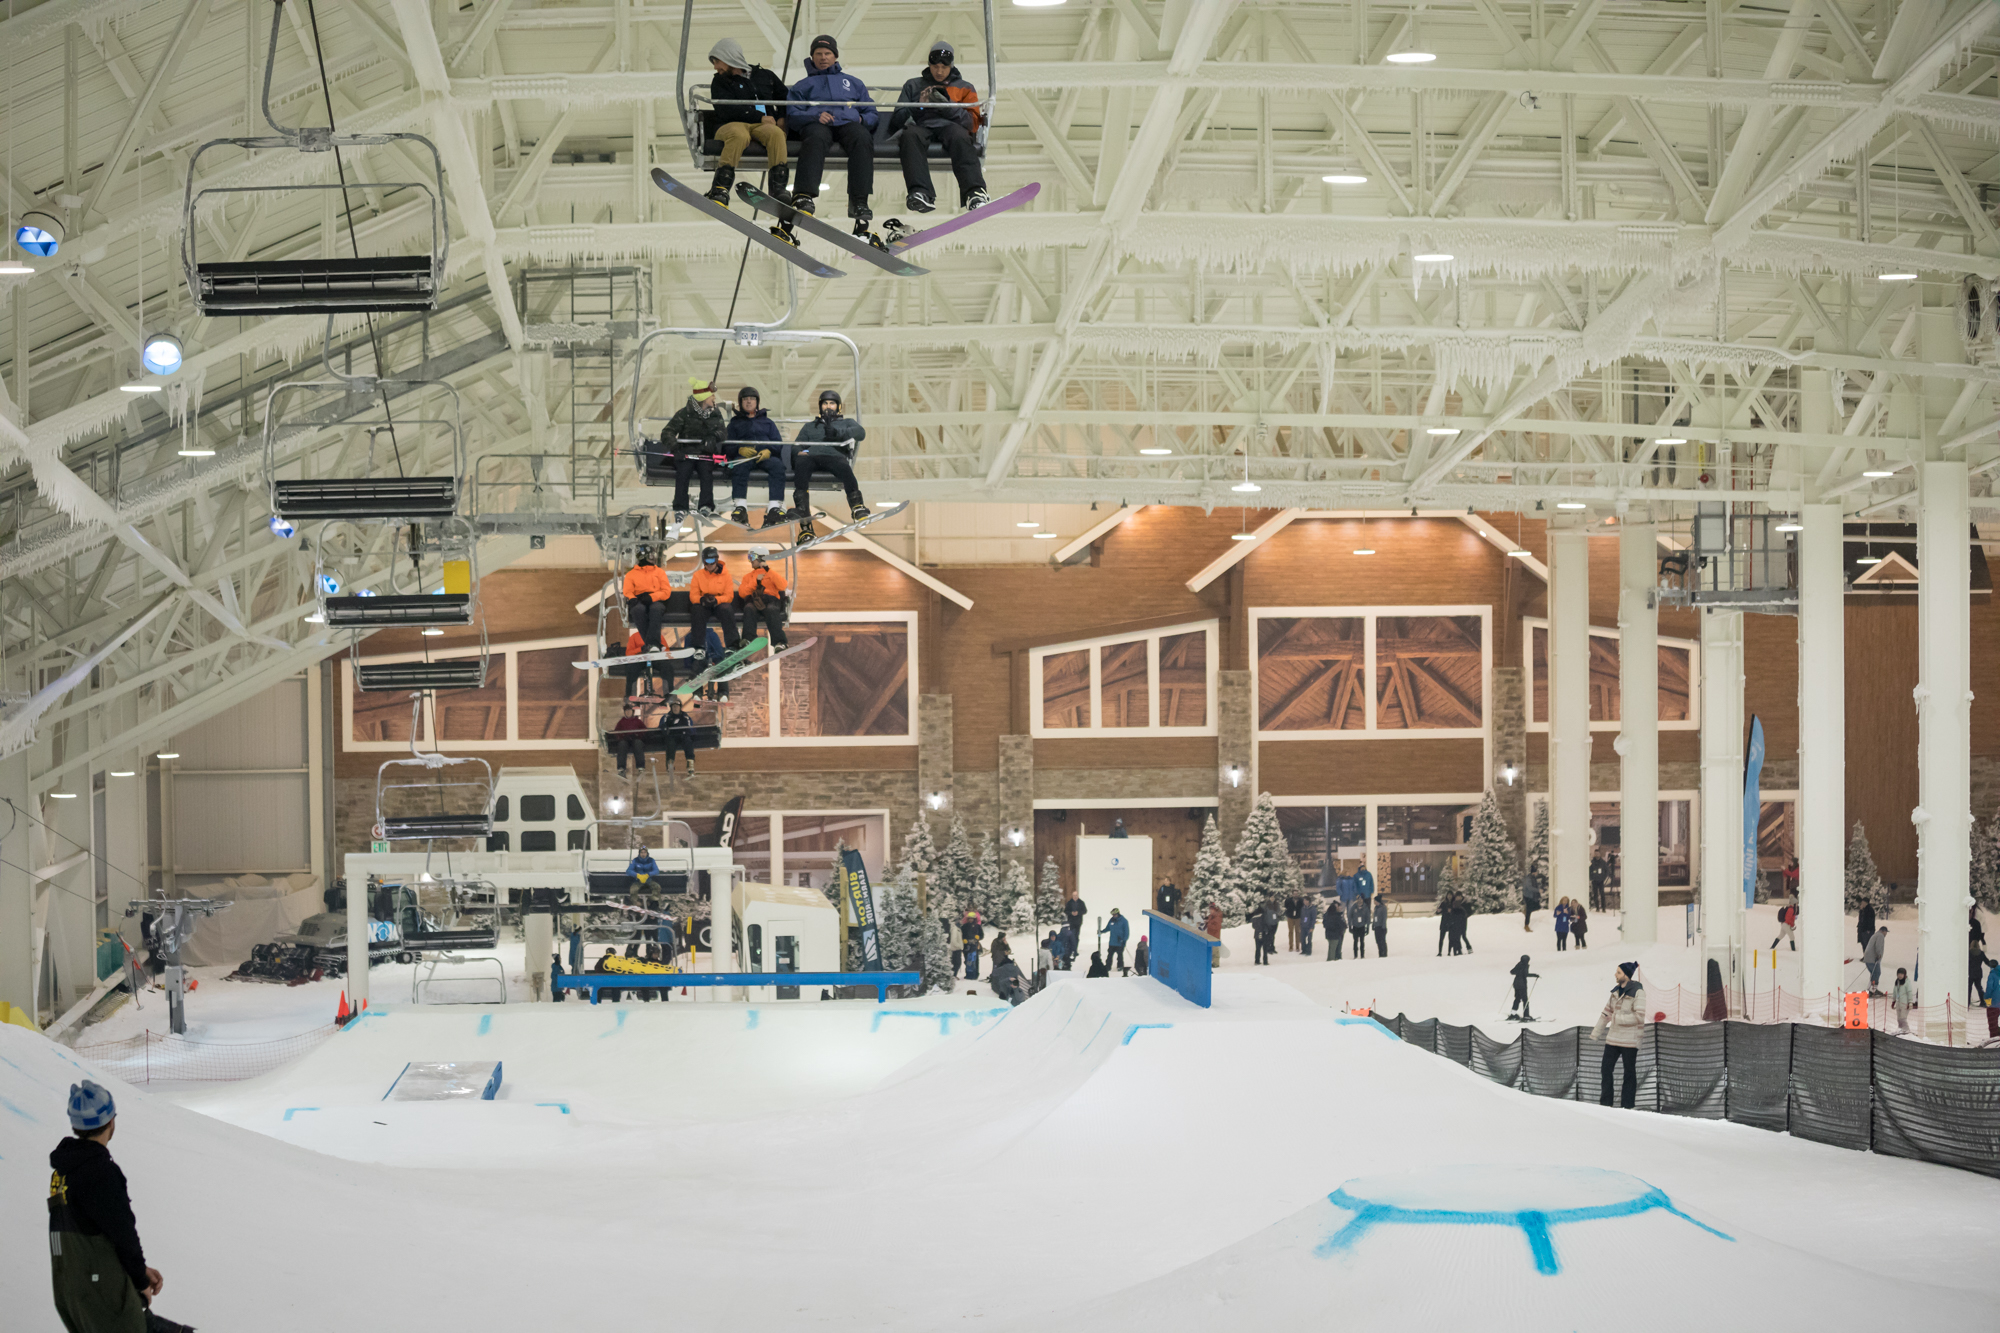 Mall Halloween Northern Nj 2020 North America's first indoor ski resort is now open at New